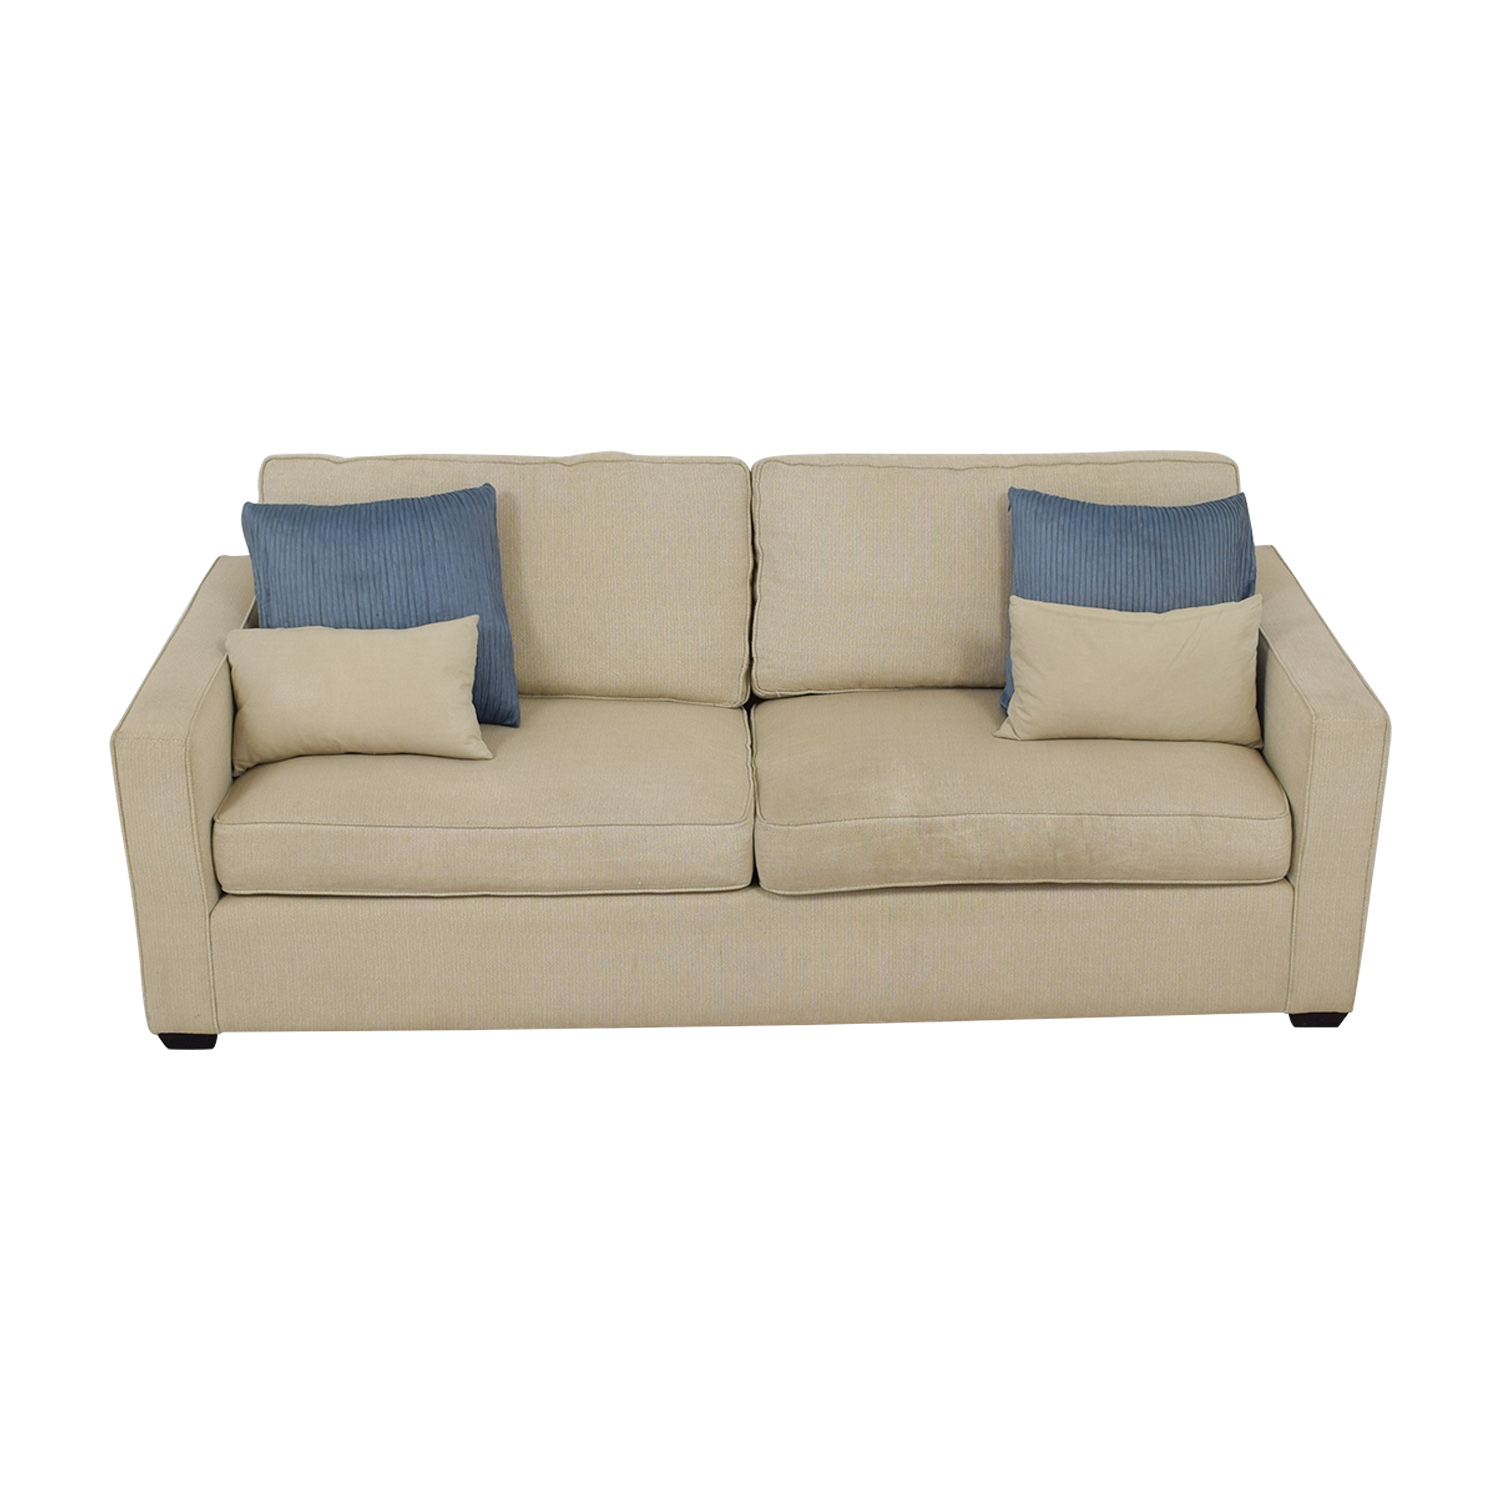 Room & Board Room & Board Dublin Beige Two-Cushion Sofa